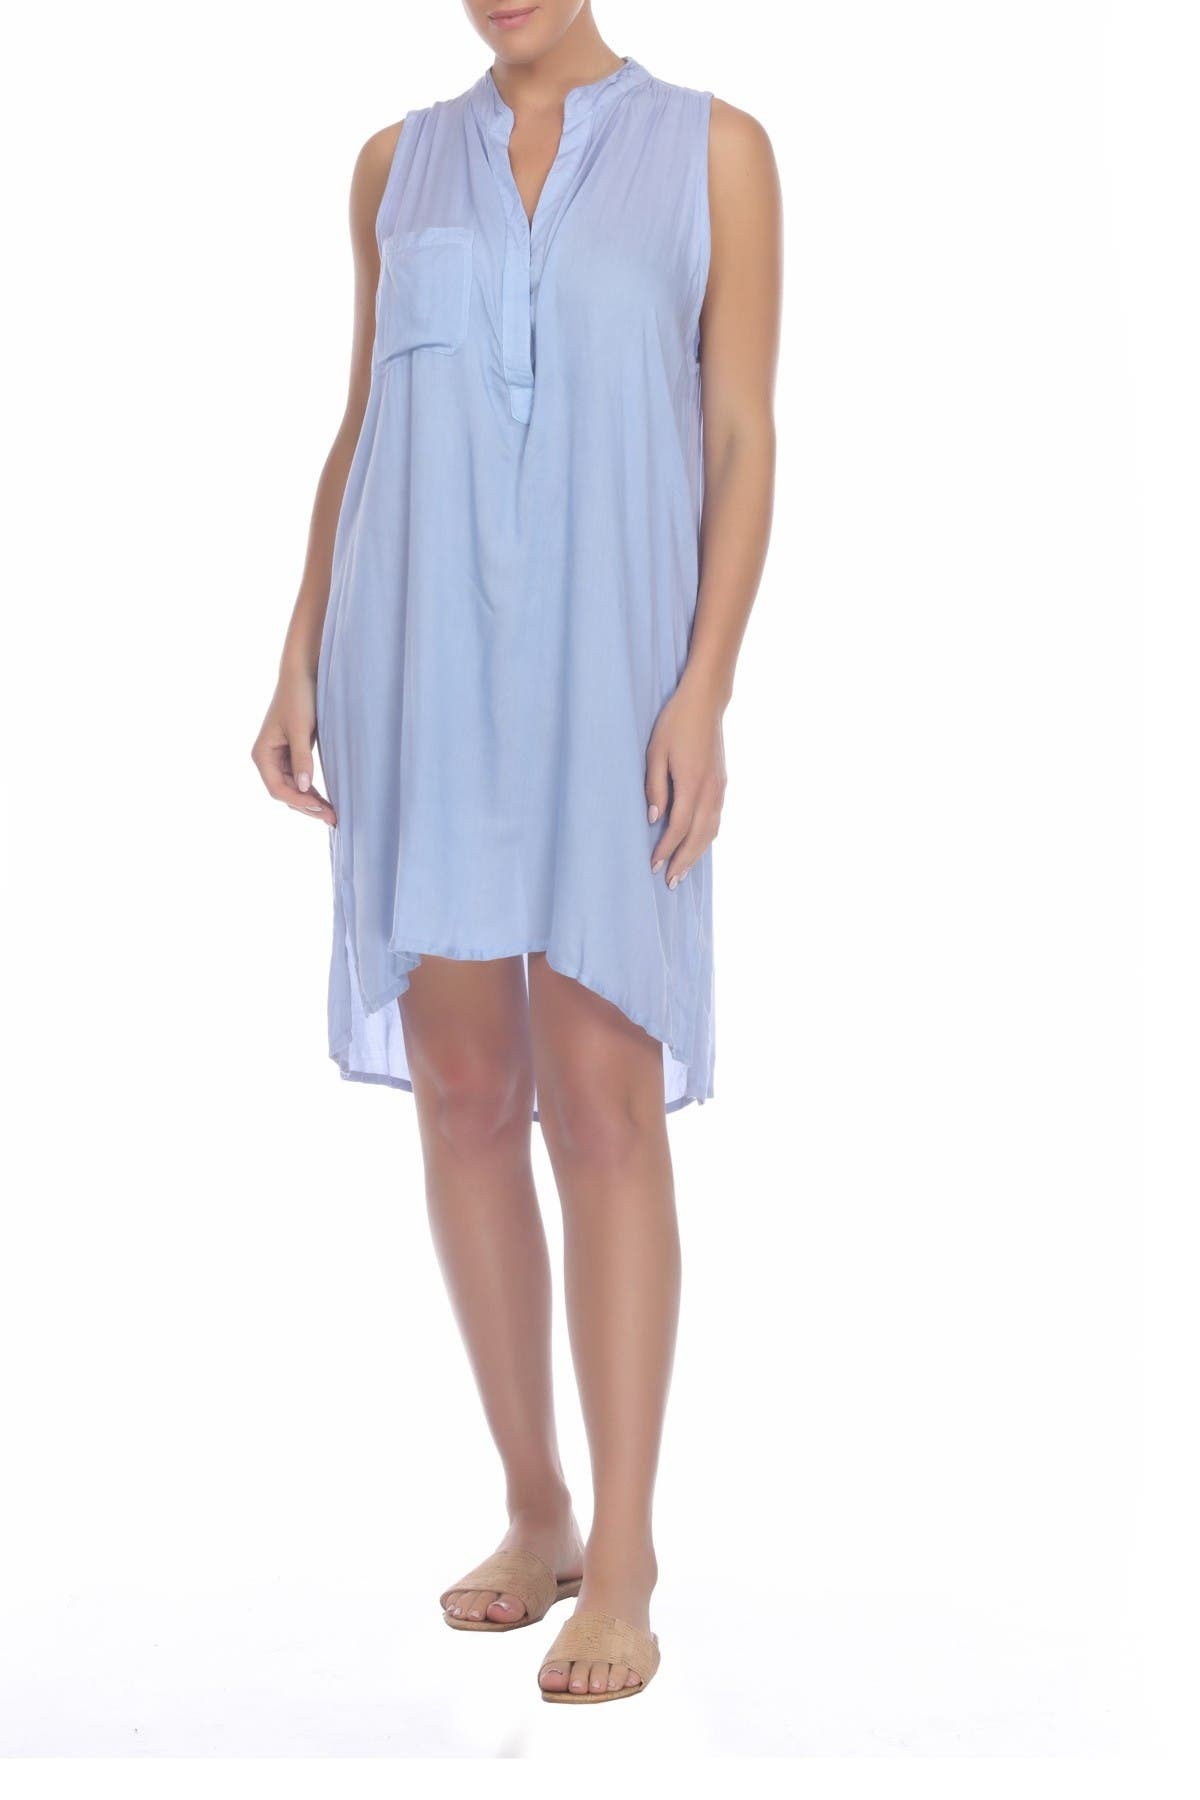 Image of BOHO ME Sleeveless Cover-Up Tunic Dress